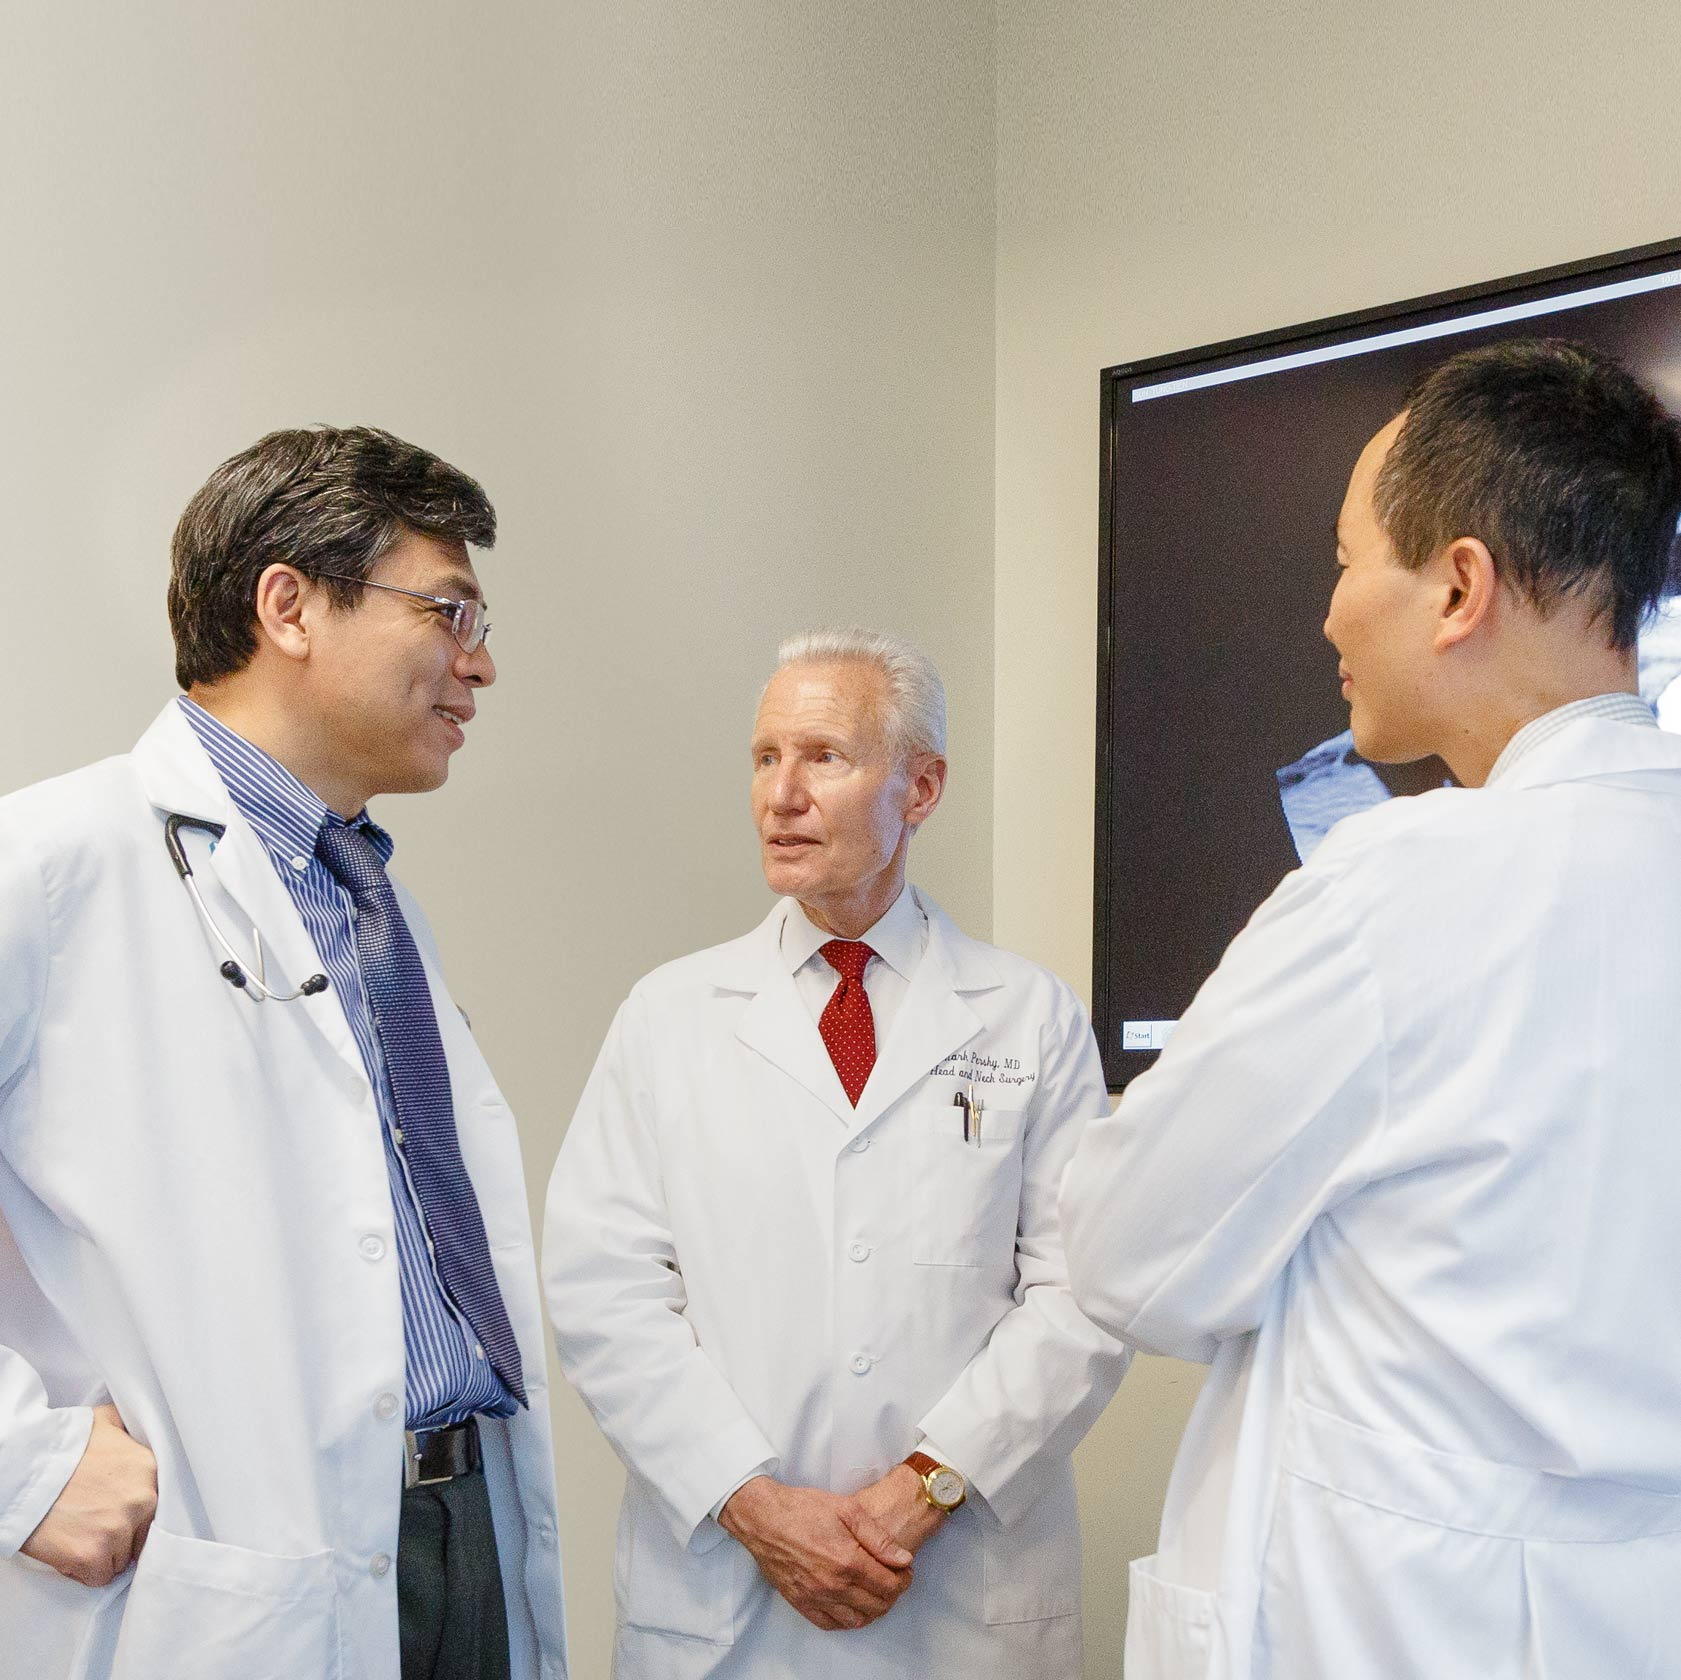 Dr. Zujun Li, Dr. Mark Persky, and Dr. Kenneth Hu